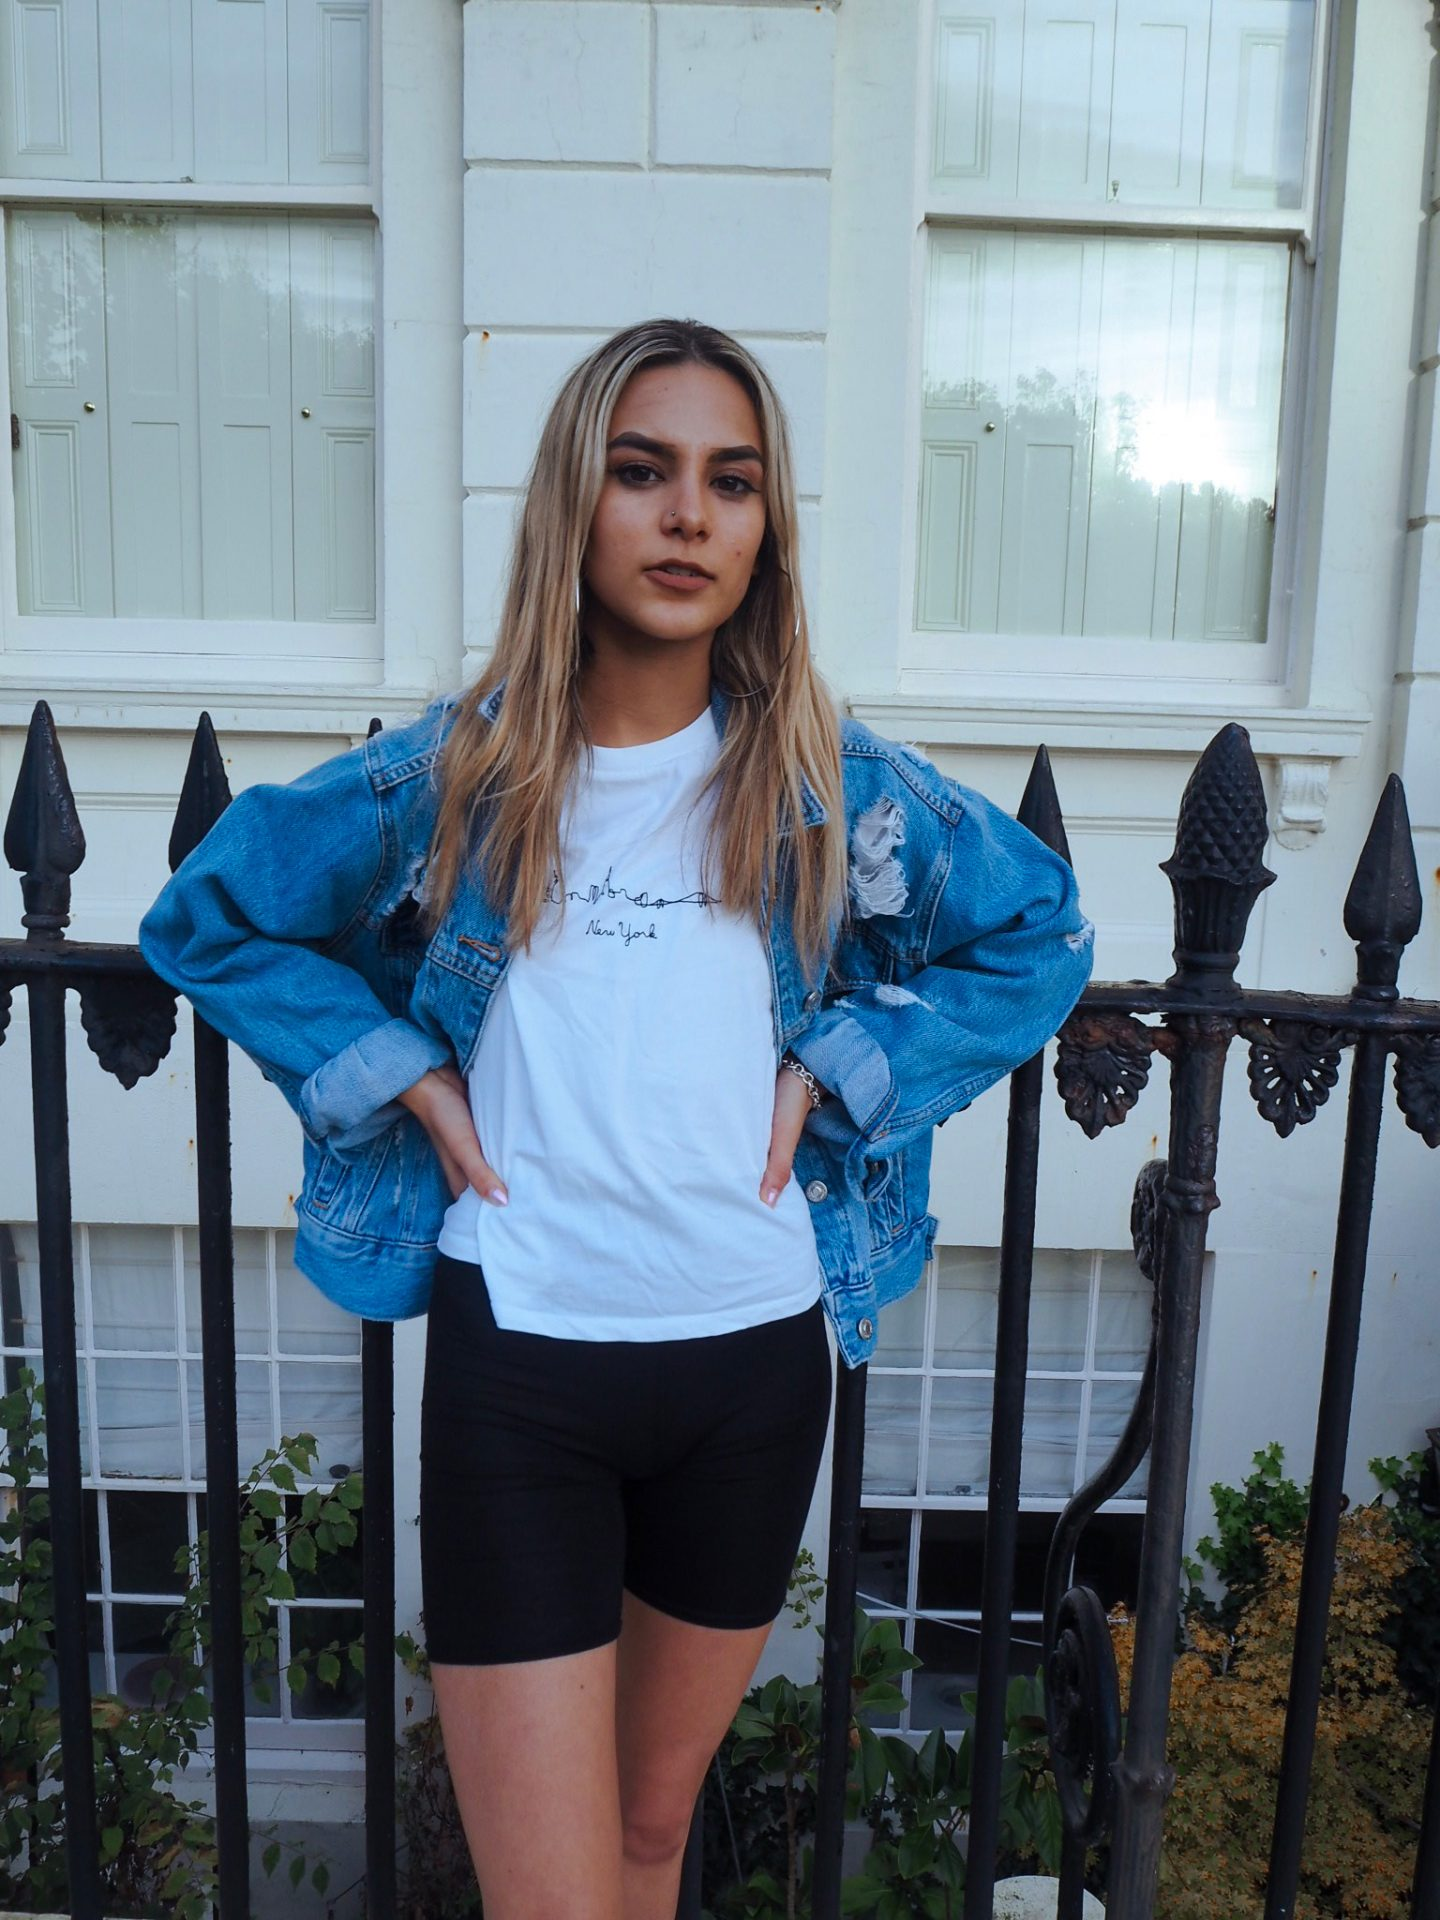 yasmin stefanie pretty little thing cycling shorts topshop denim jacket skyline t shirt chunky ciara trainers